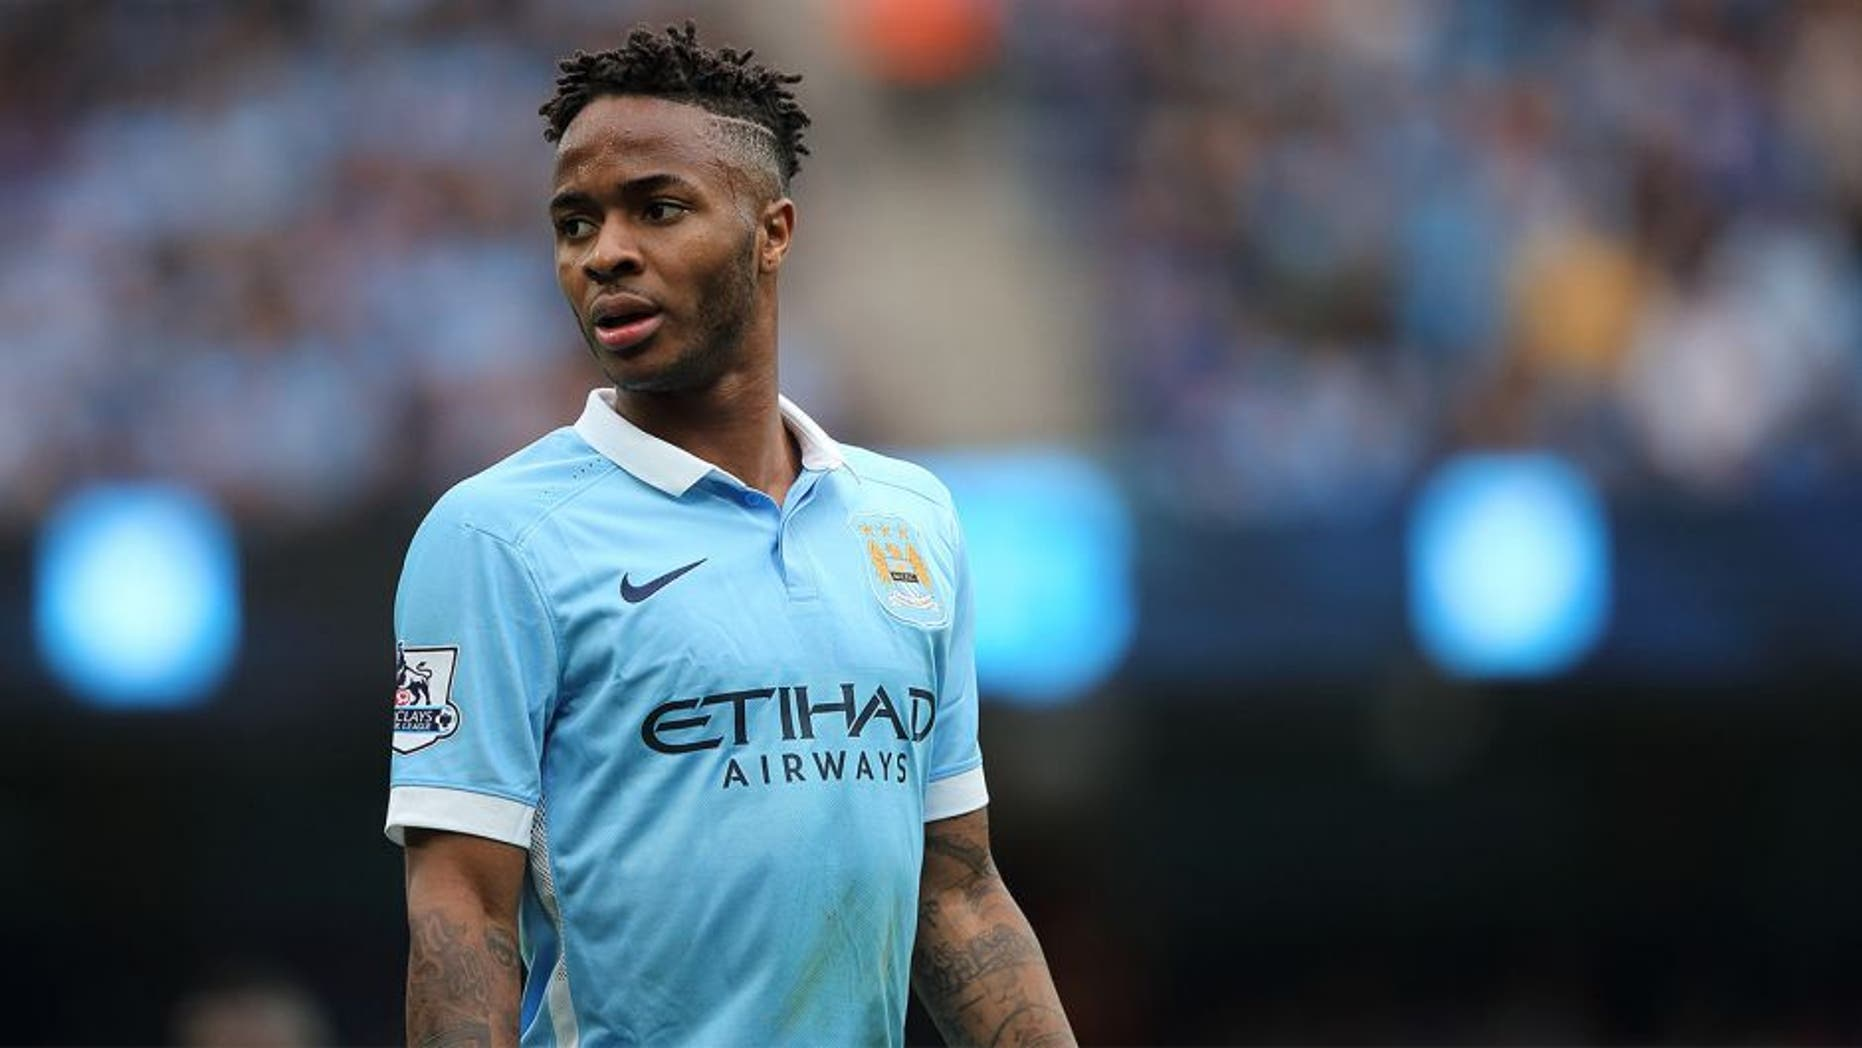 MANCHESTER, ENGLAND - AUGUST 16: Raheem Sterling of Manchester City during the Barclays Premier League match between Manchester City and Chelsea at the Etihad Stadium on August 16, 2015 in Manchester, England. (Photo by Matthew Ashton - AMA/Getty Images)